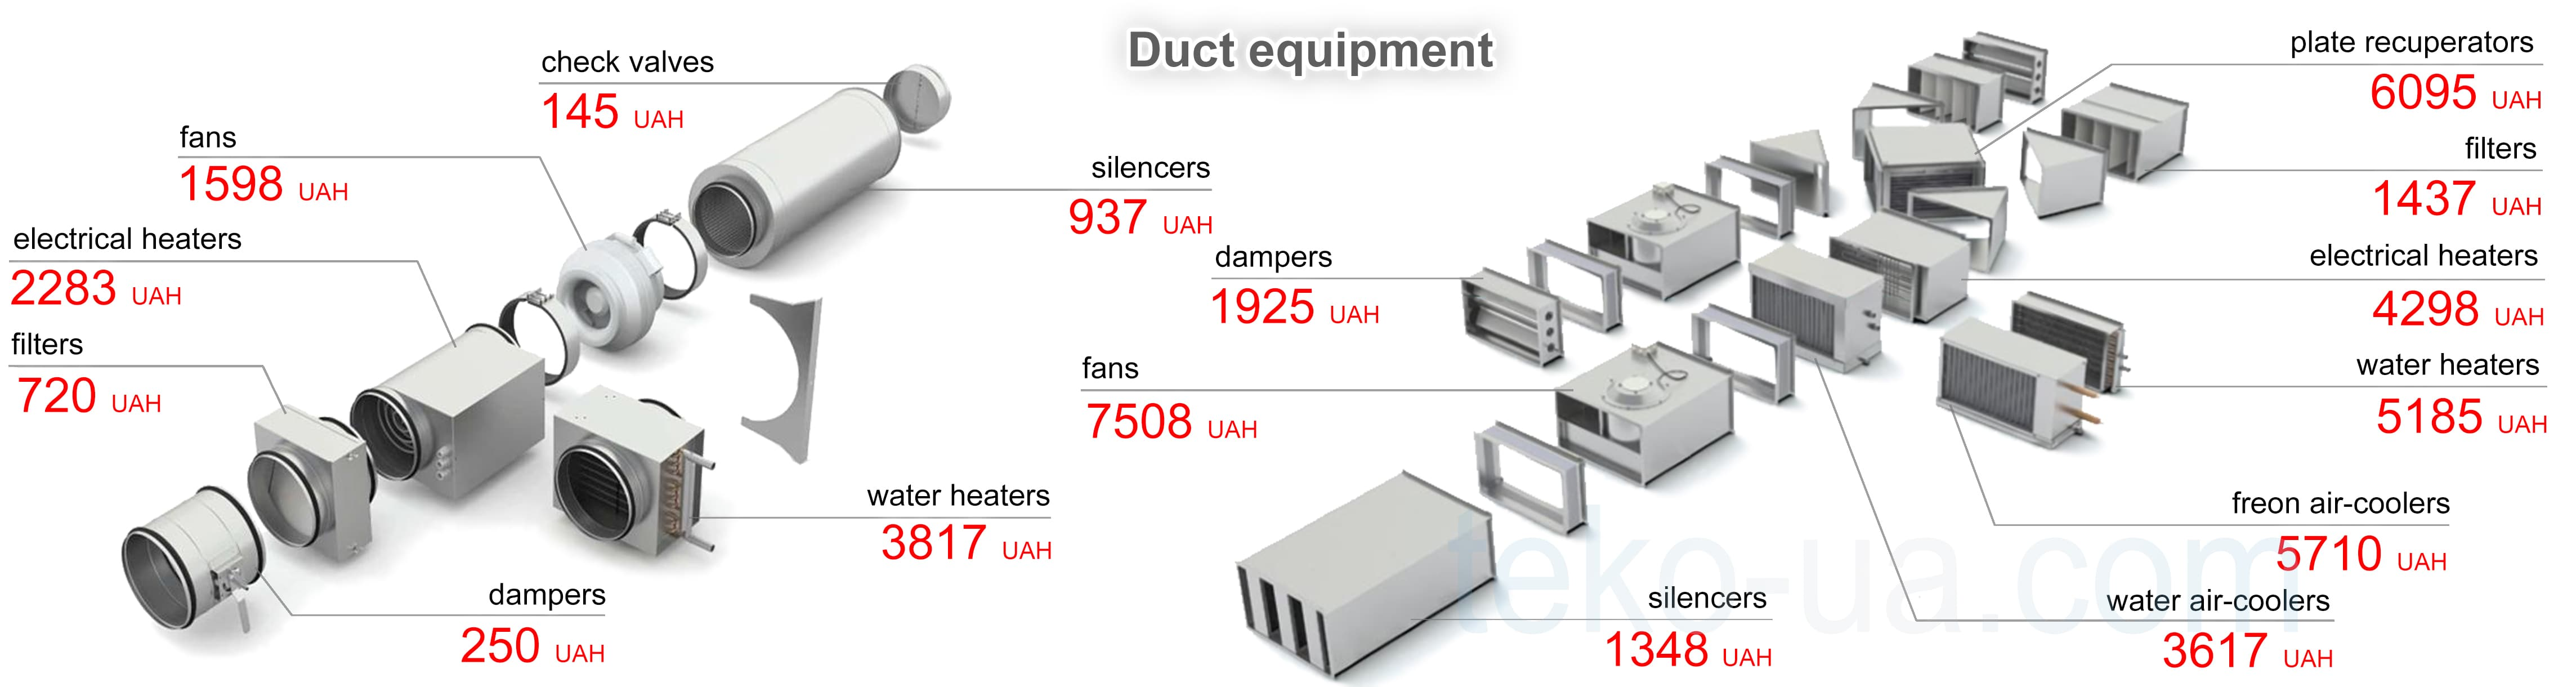 Duct equipment